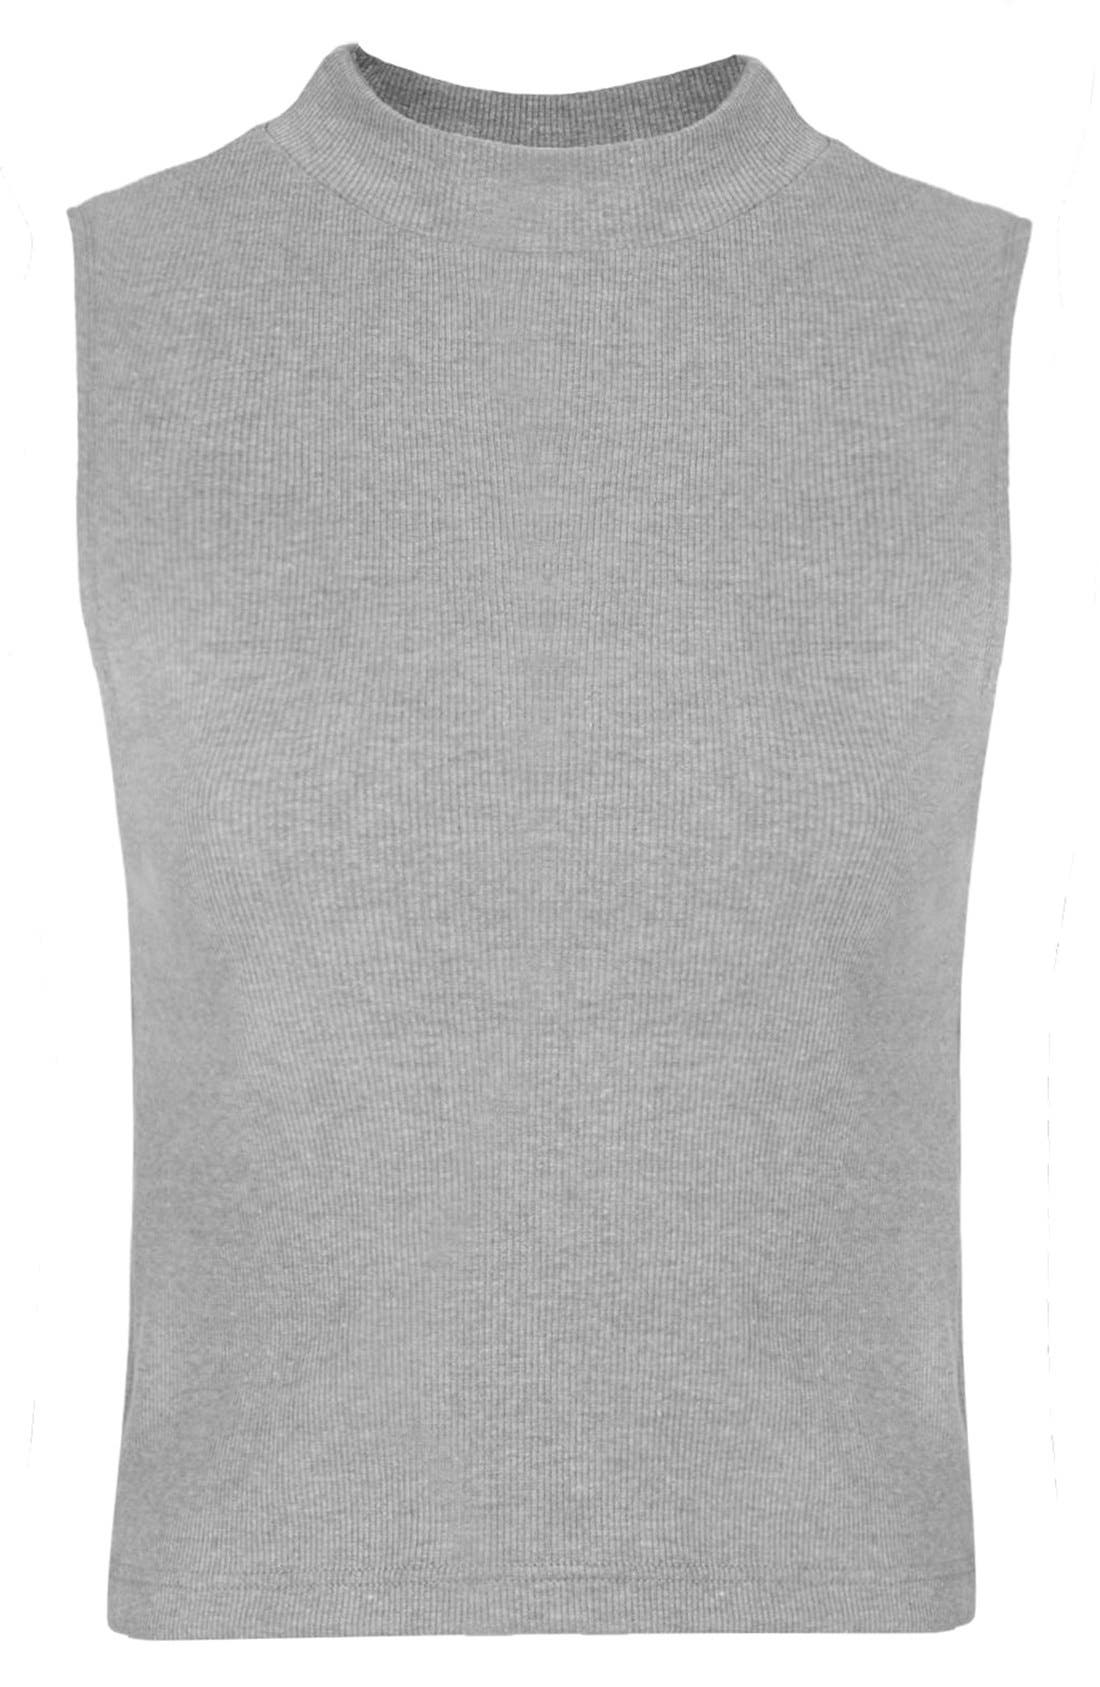 Alternate Image 3  - Topshop Sleeveless Funnel Top